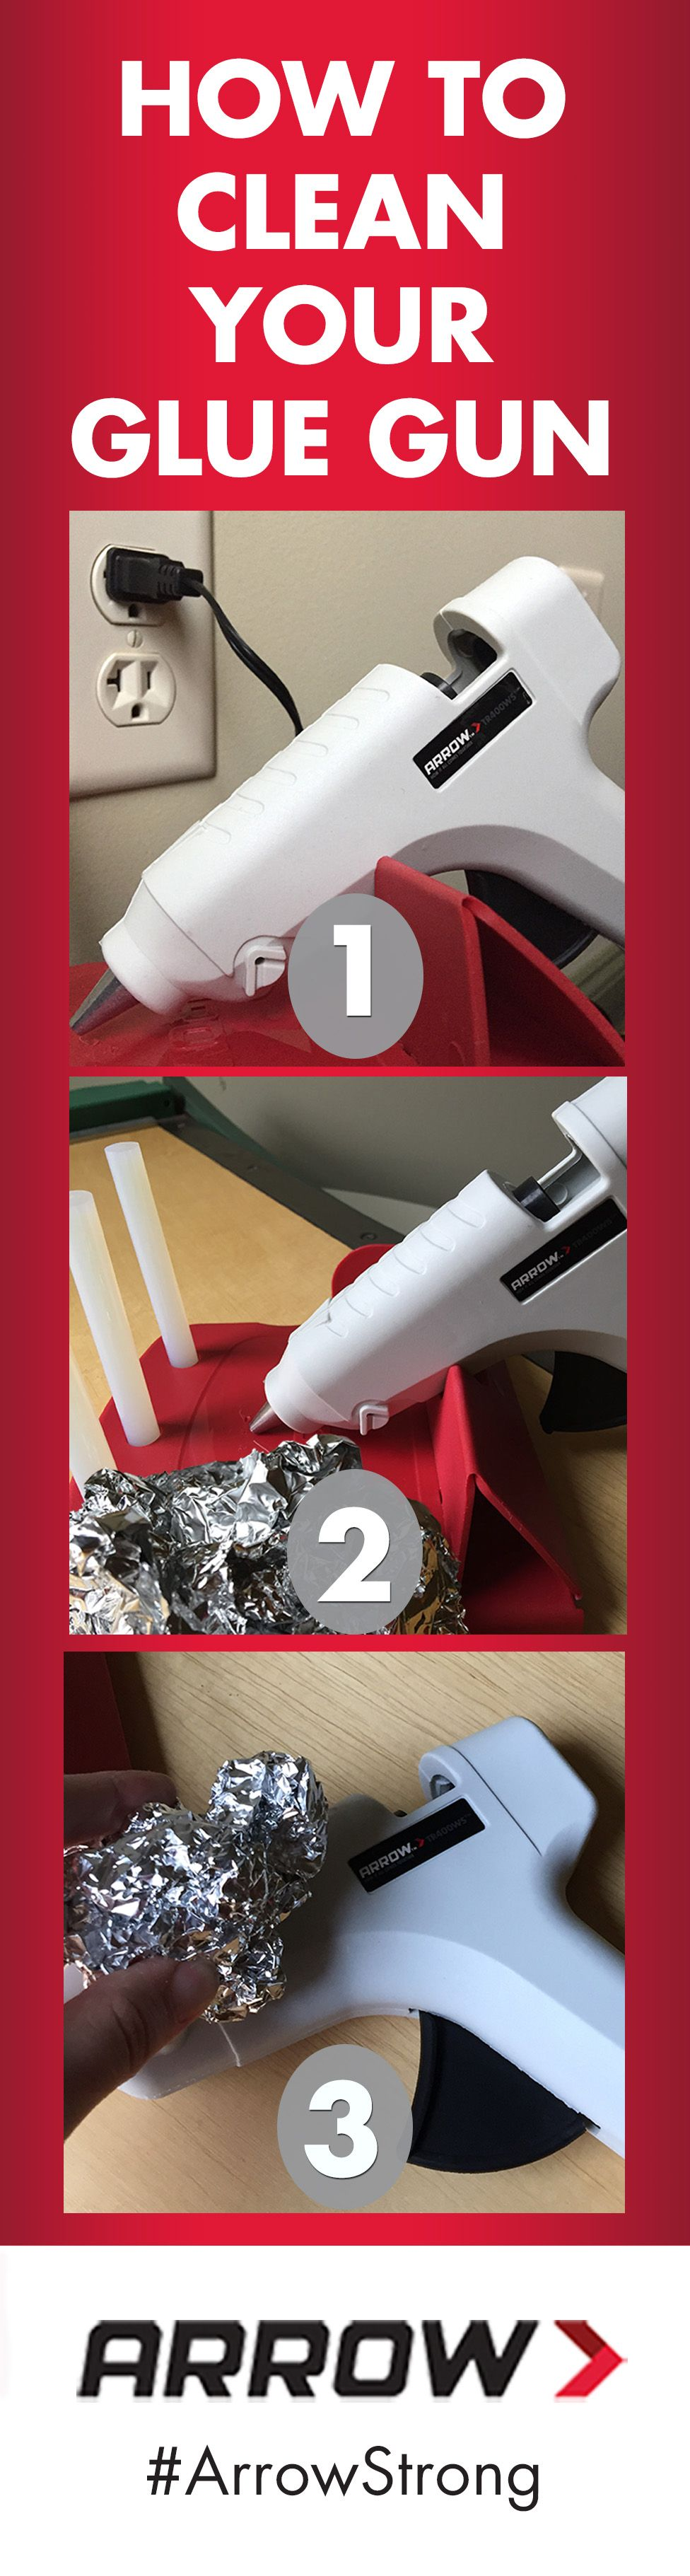 arrow hot glue gun instructions